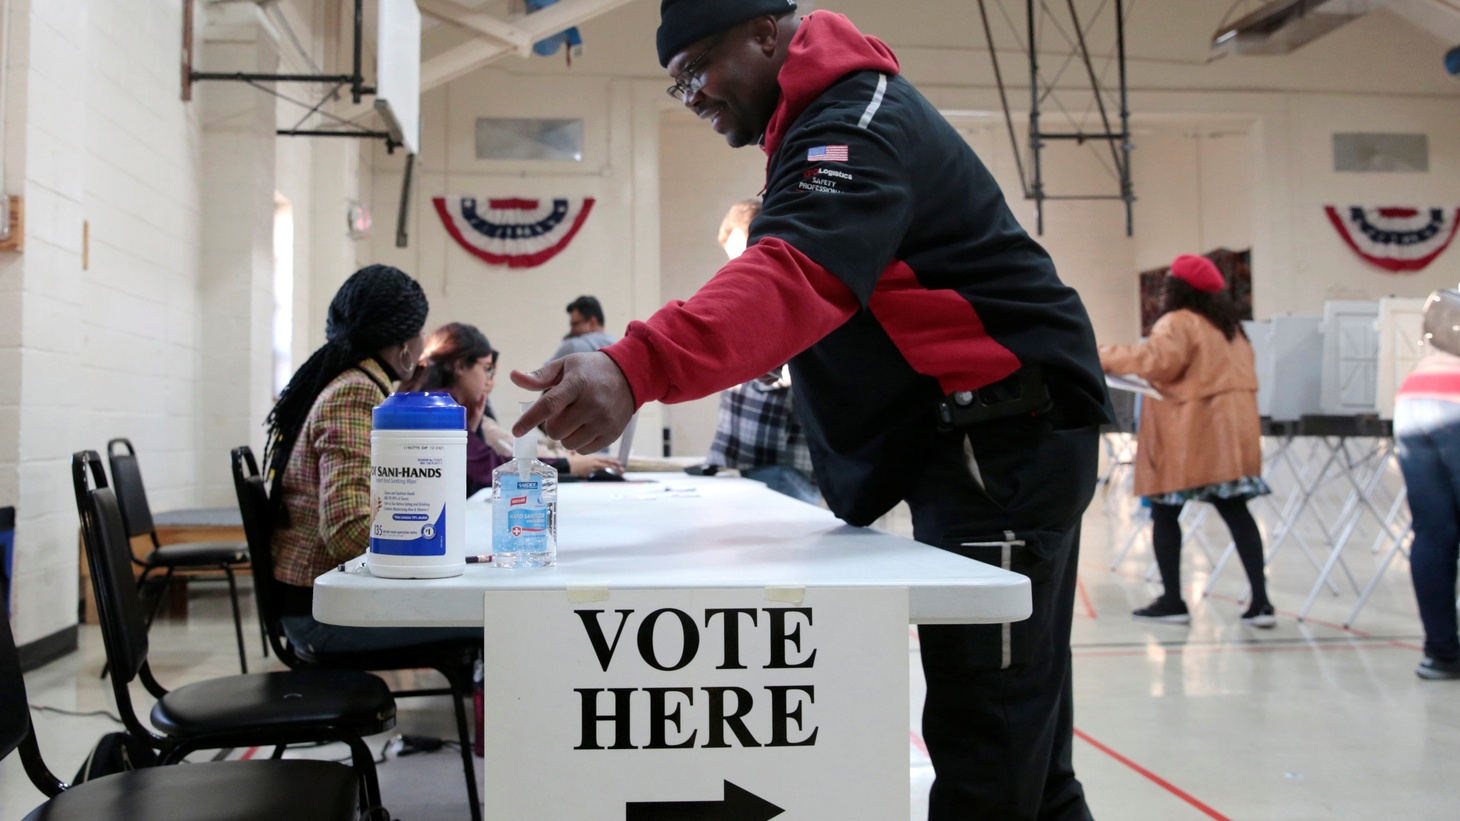 A voter uses the hand sanitizer on the table as voters cast their ballots in the Democratic primary in Warren, Michigan, U.S. March 10, 2020.